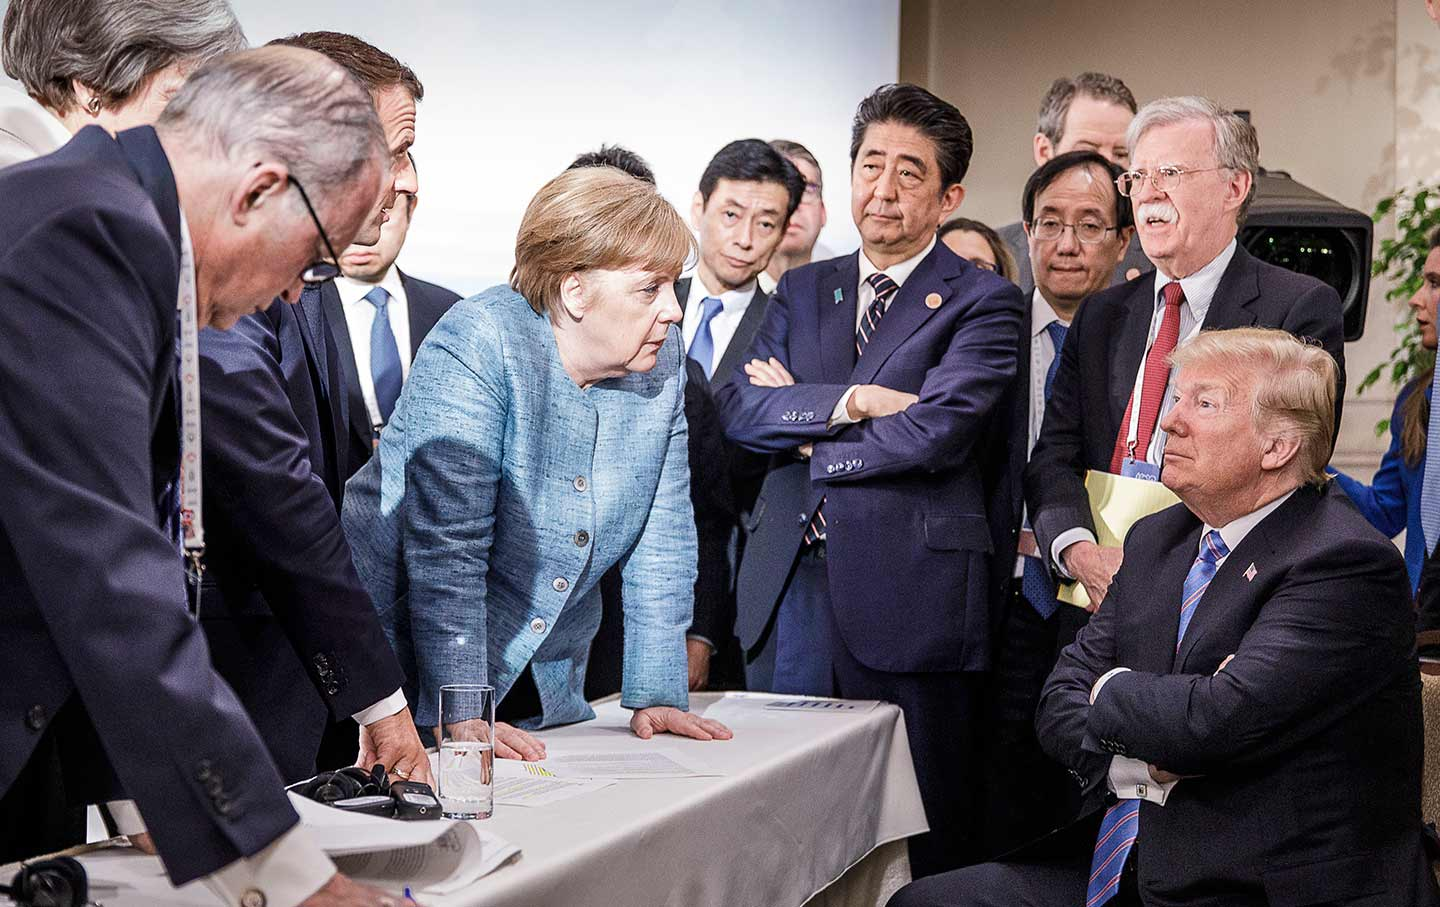 Angela Merkel stares down Trump G-7